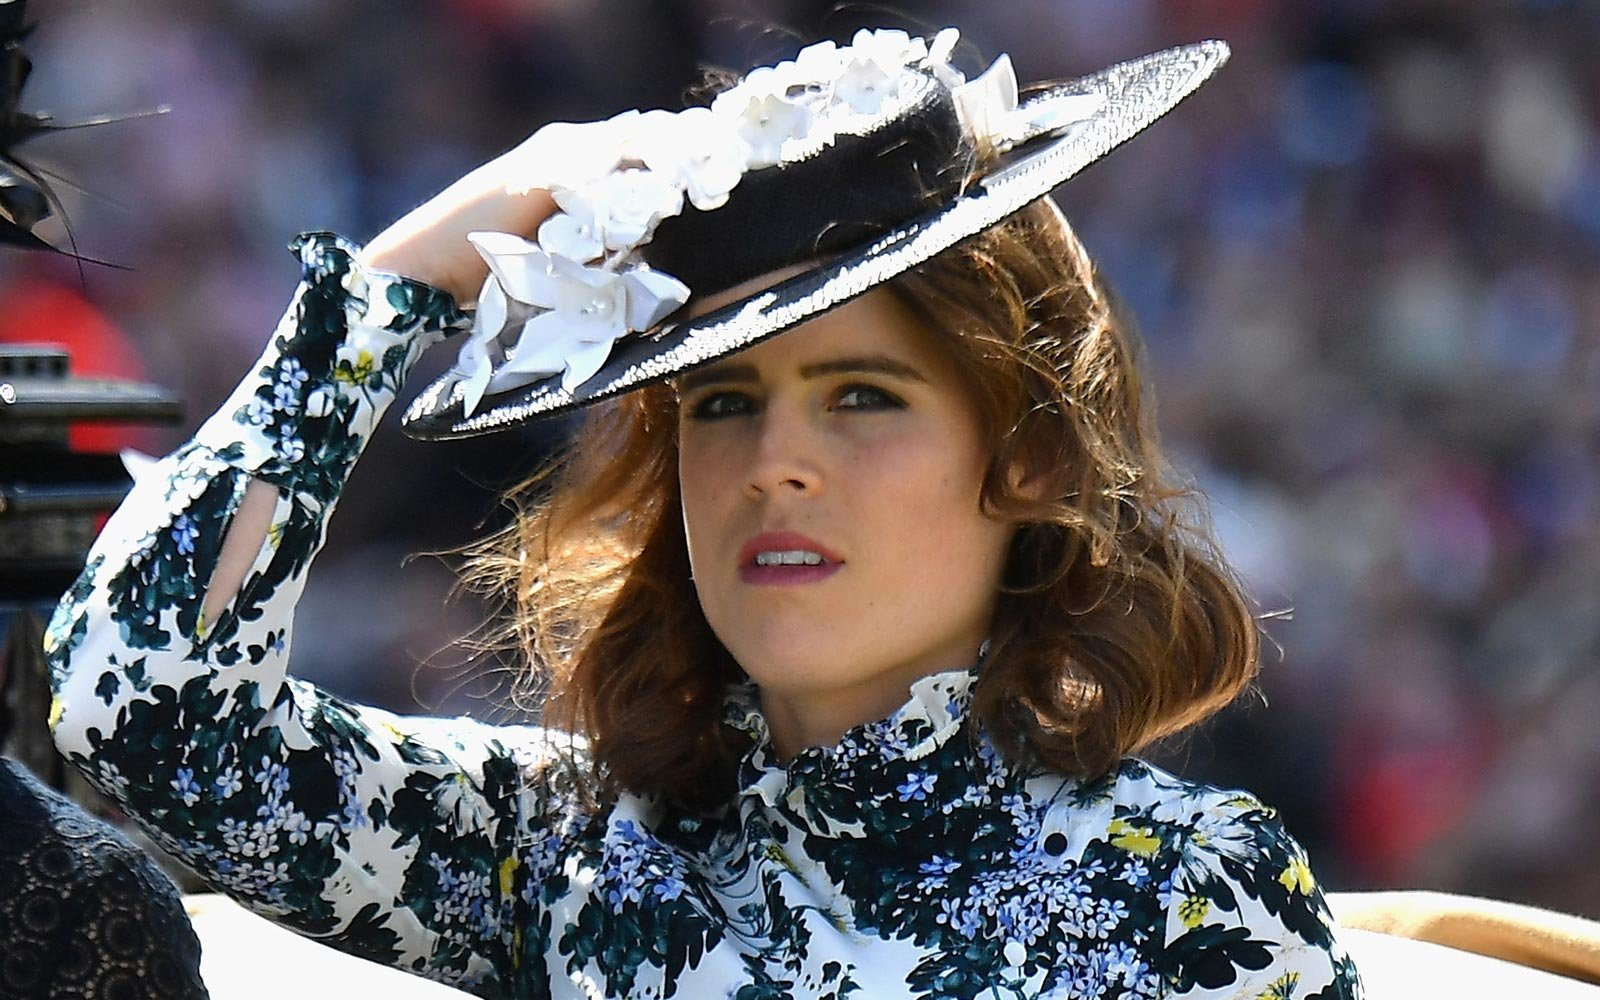 Princess Beatrice of York and Princess Eugenie of York arrive in the Royal Procession on day 3 of Royal Ascot at Ascot Racecourse on June 21, 2018